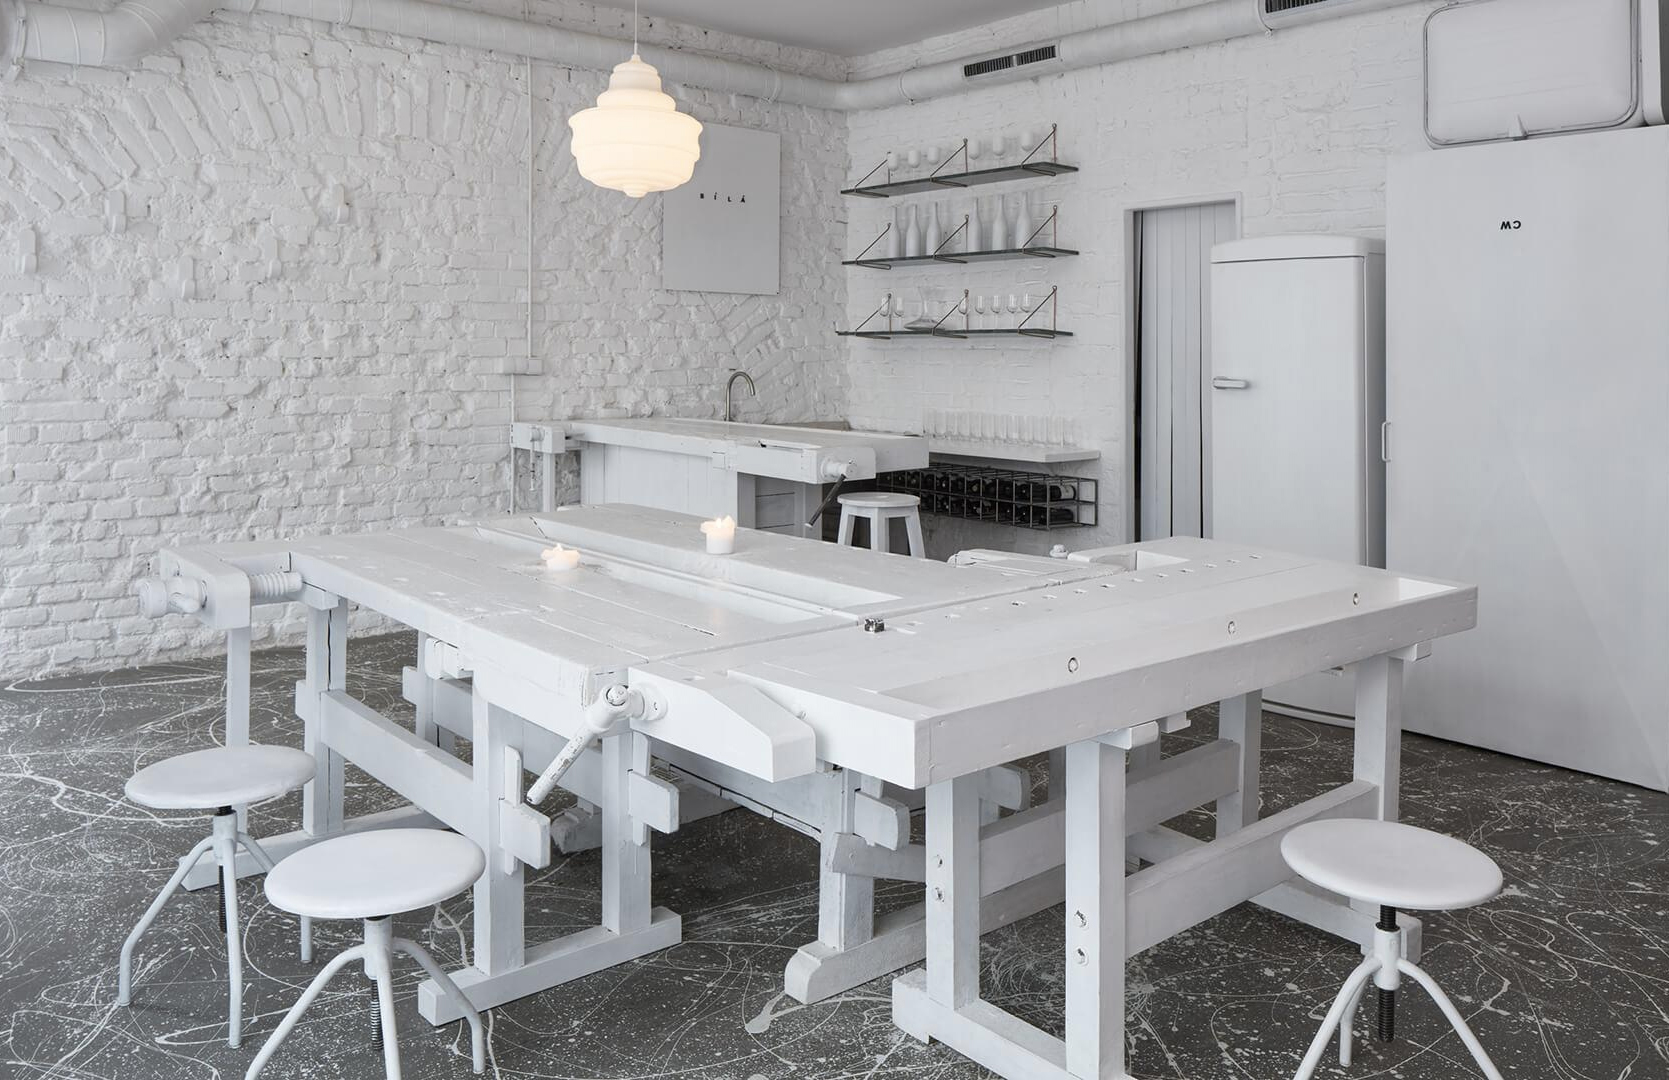 The ultra-minimal interiors of Dvojka bar in Prague